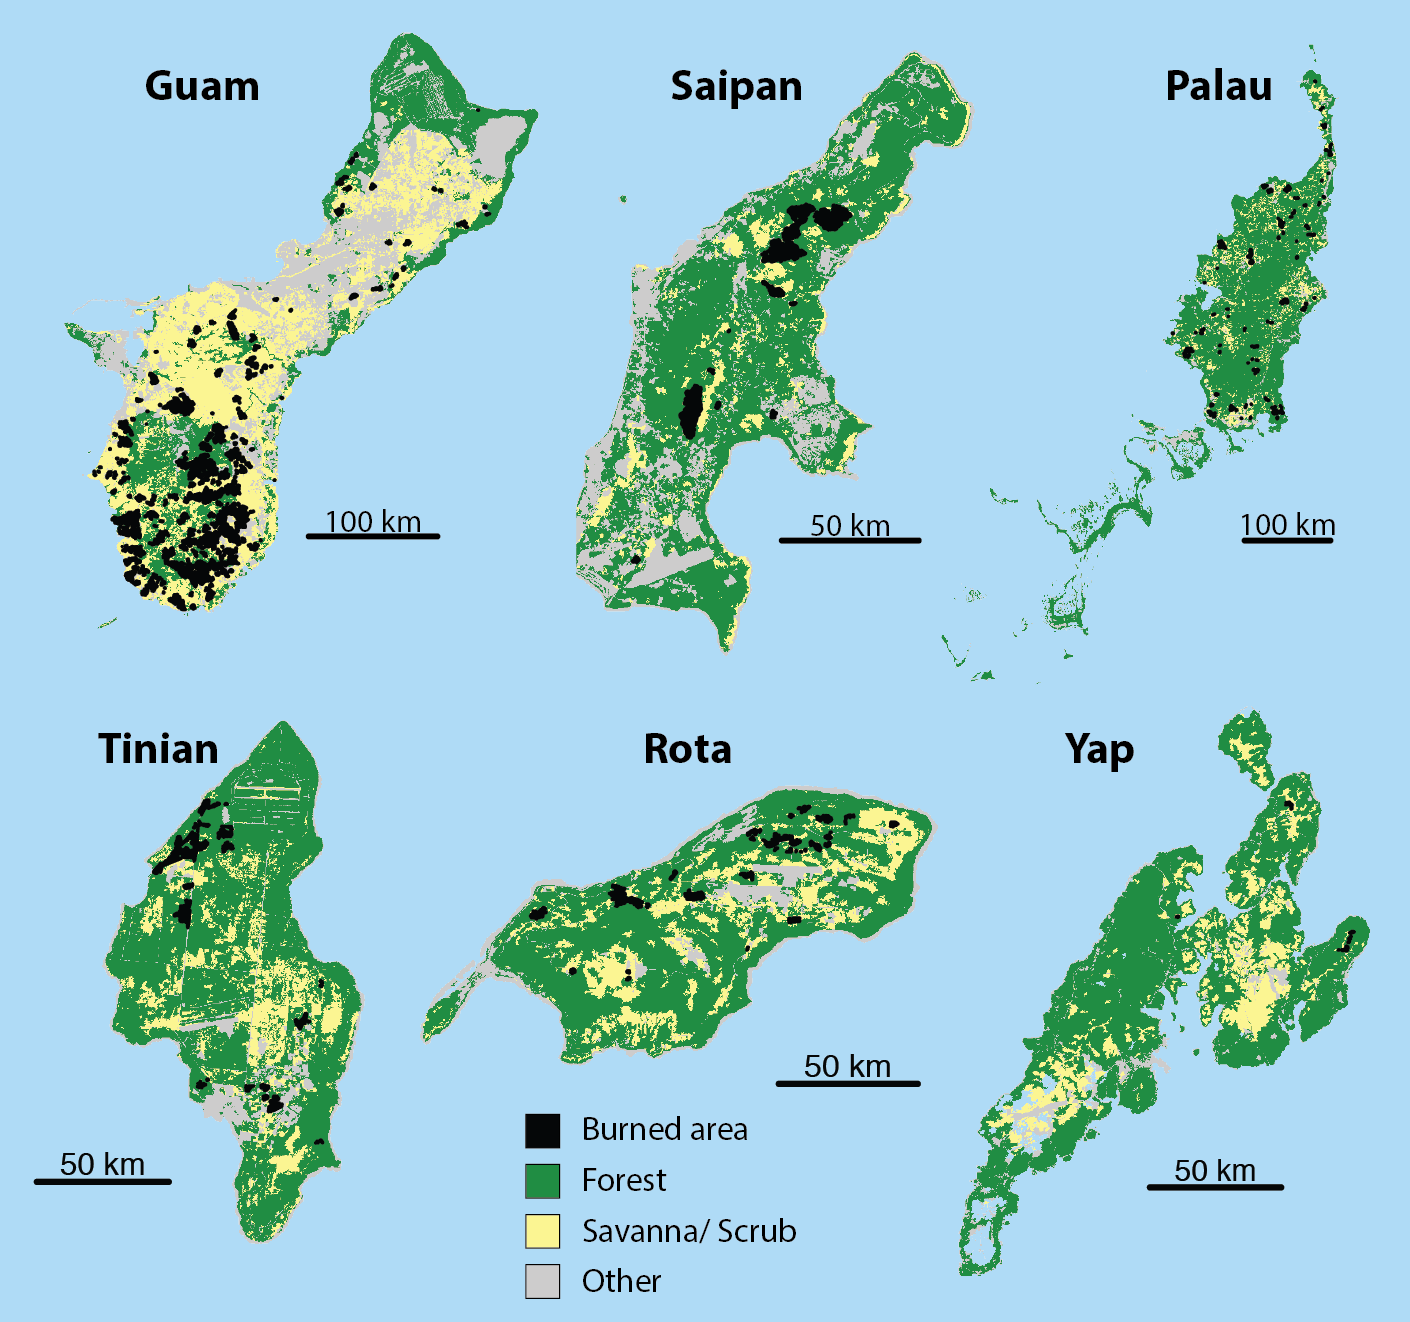 Figure 1. Island land cover, with areas burned by fires in 2018 indicated in black. Land cover data from LANDFIRE.